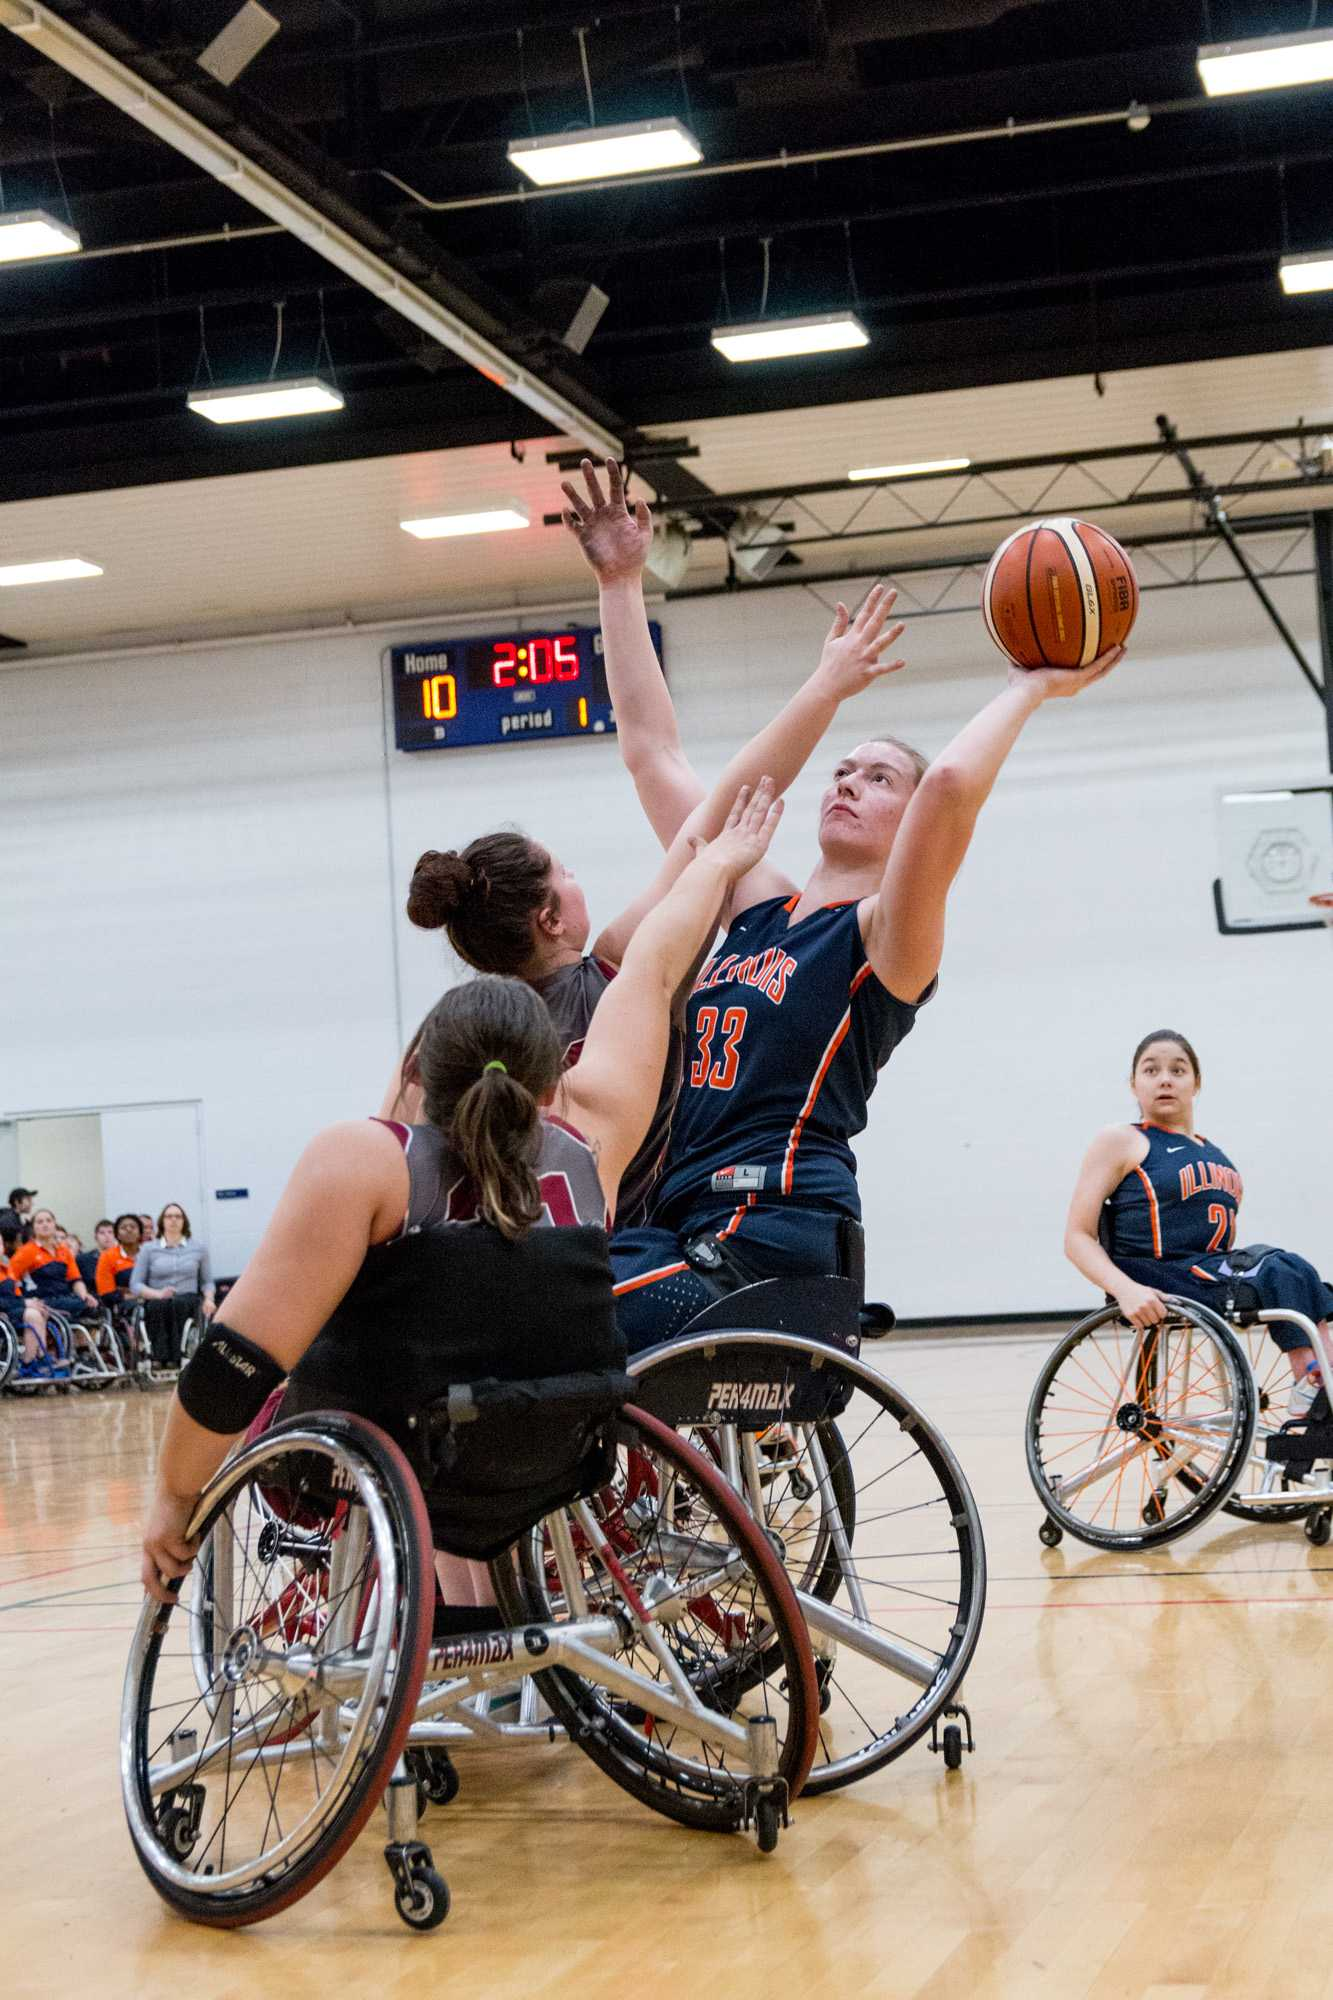 Illinois' Kendra Zeman takes a shot during the game against Alabama at the Activities and Recreation Center on February 12. The Illini won 56-47.